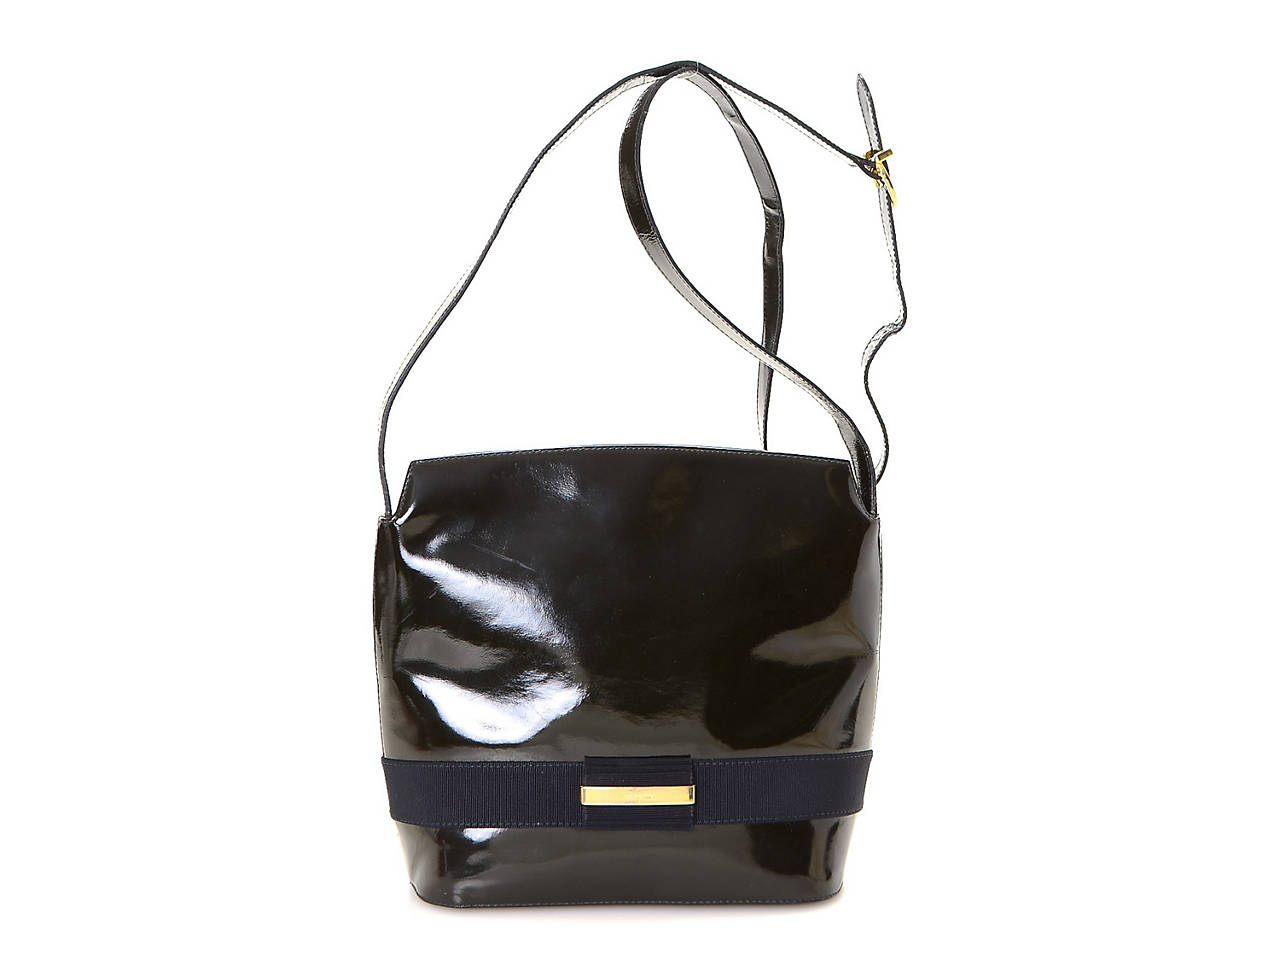 3927f539b1 Salvatore Ferragamo - Vintage Luxury Patent Leather Shoulder Bag ...